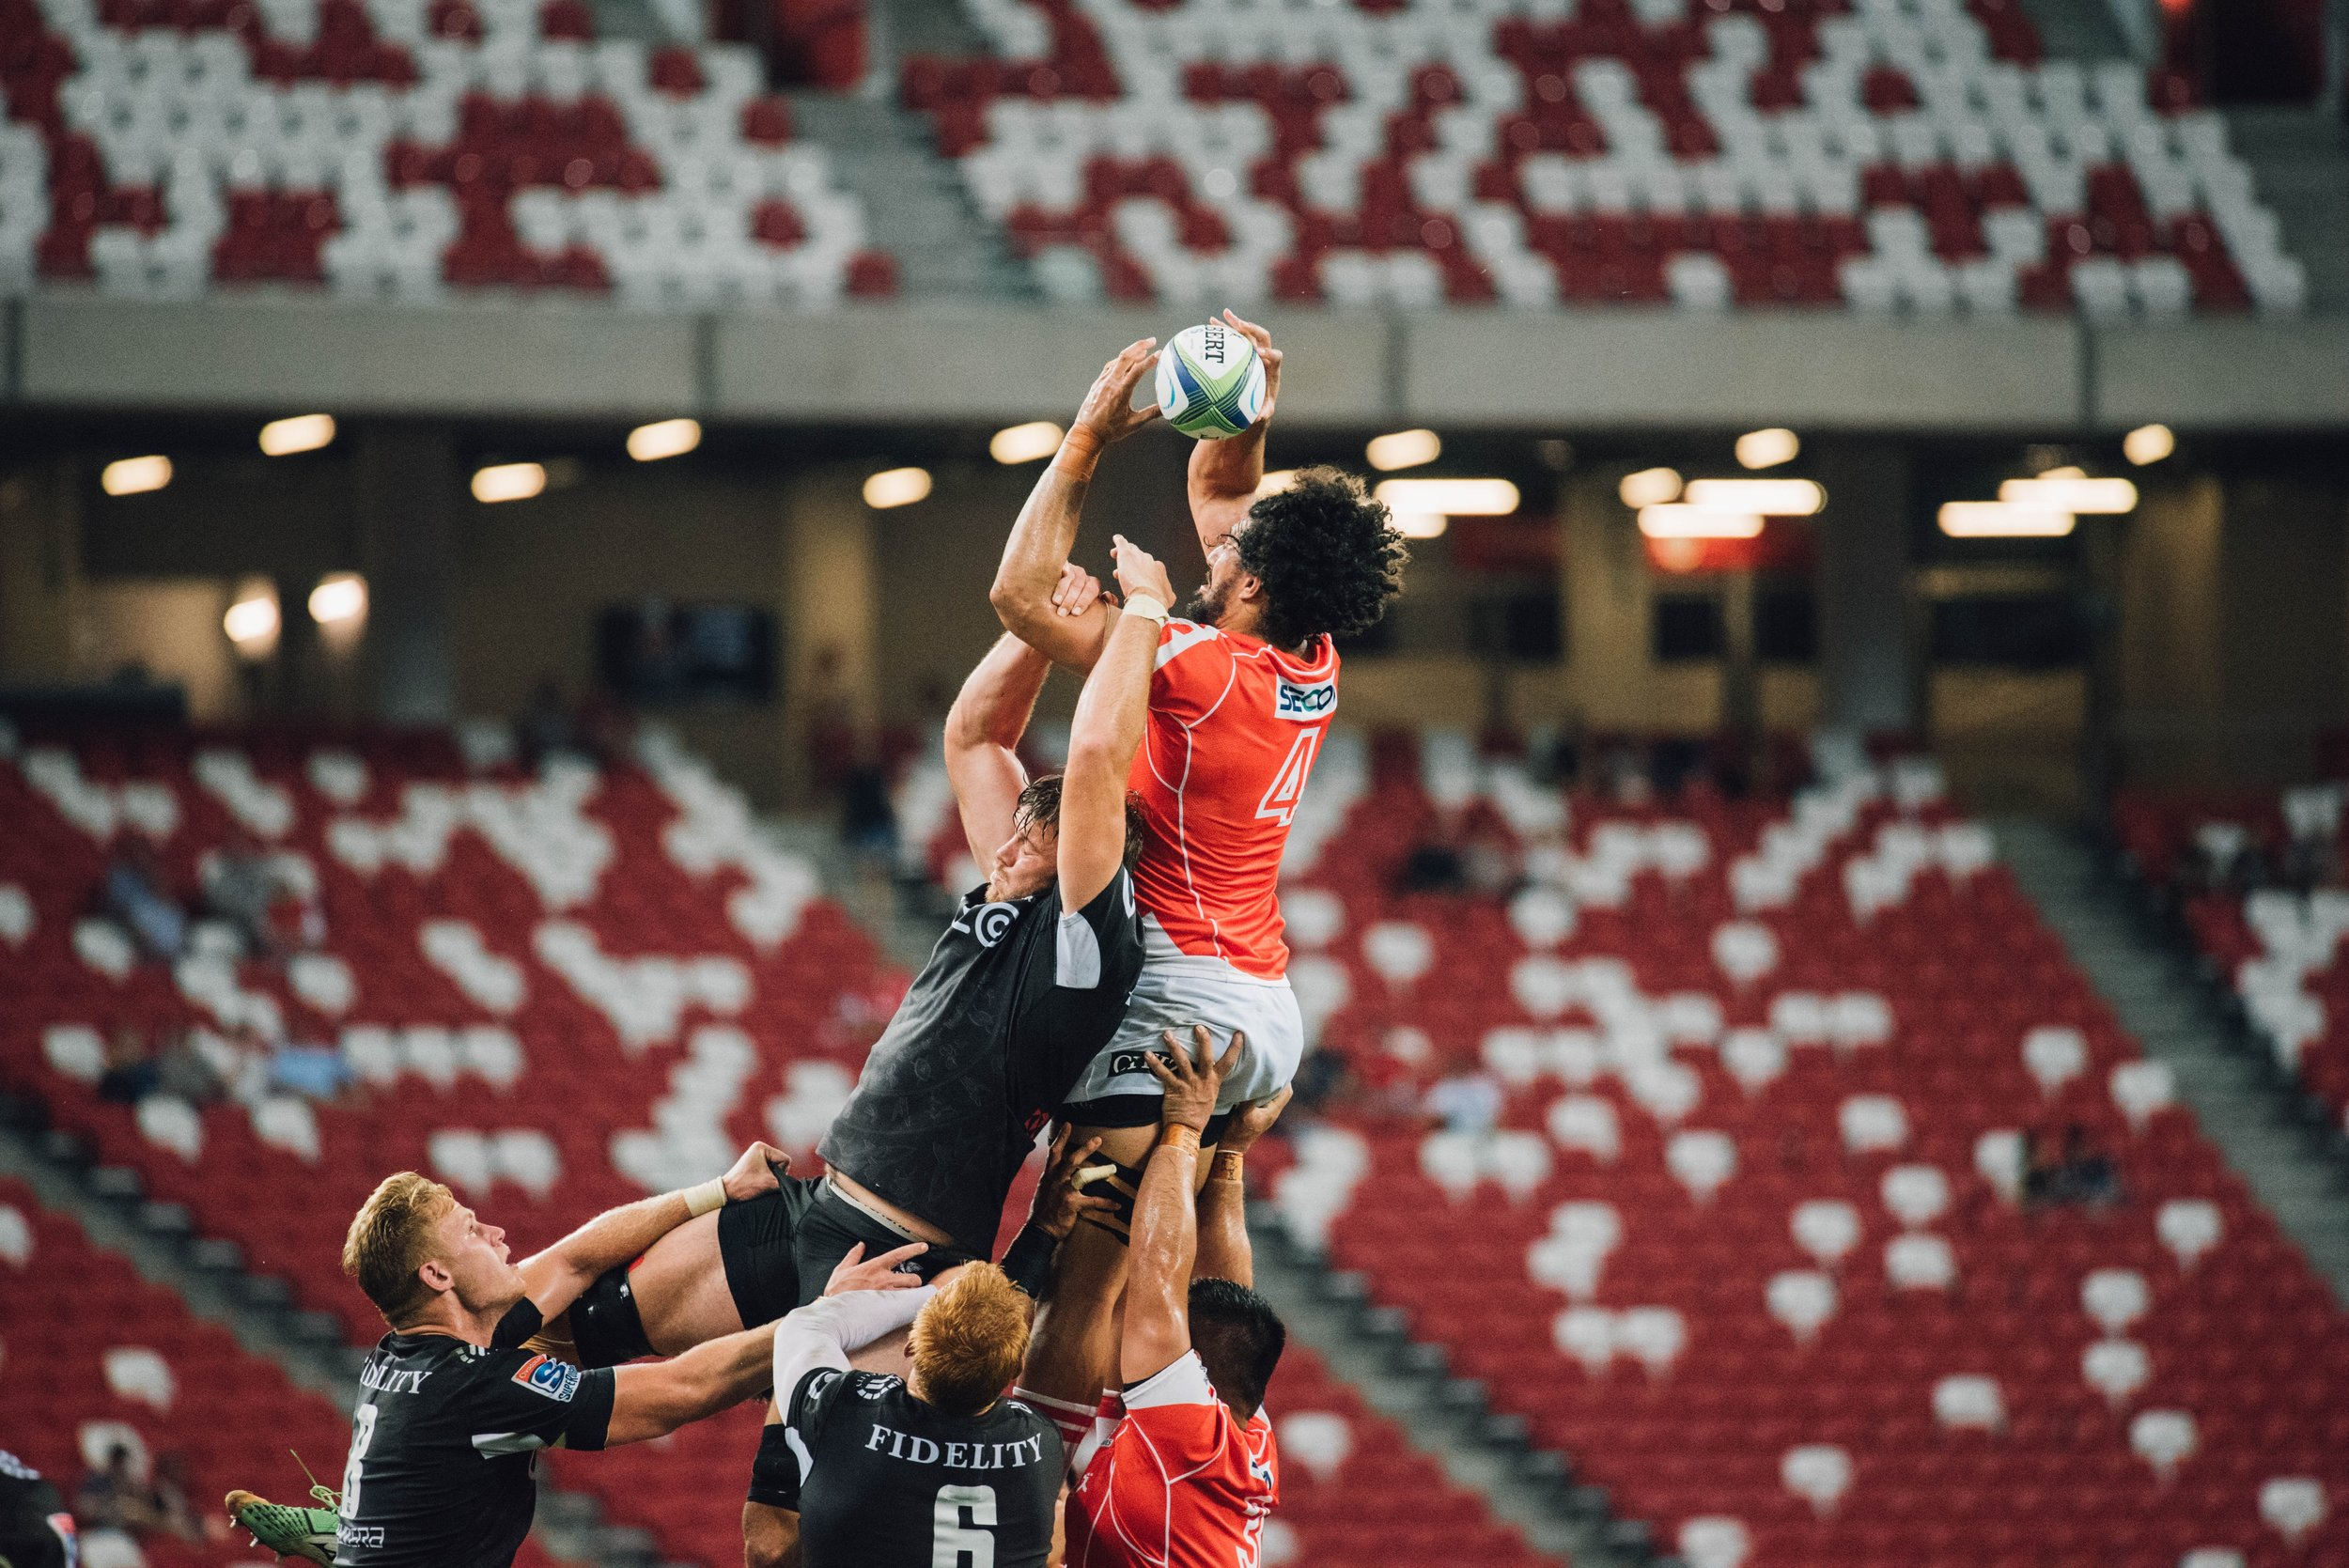 Lineout - The Youth Academy